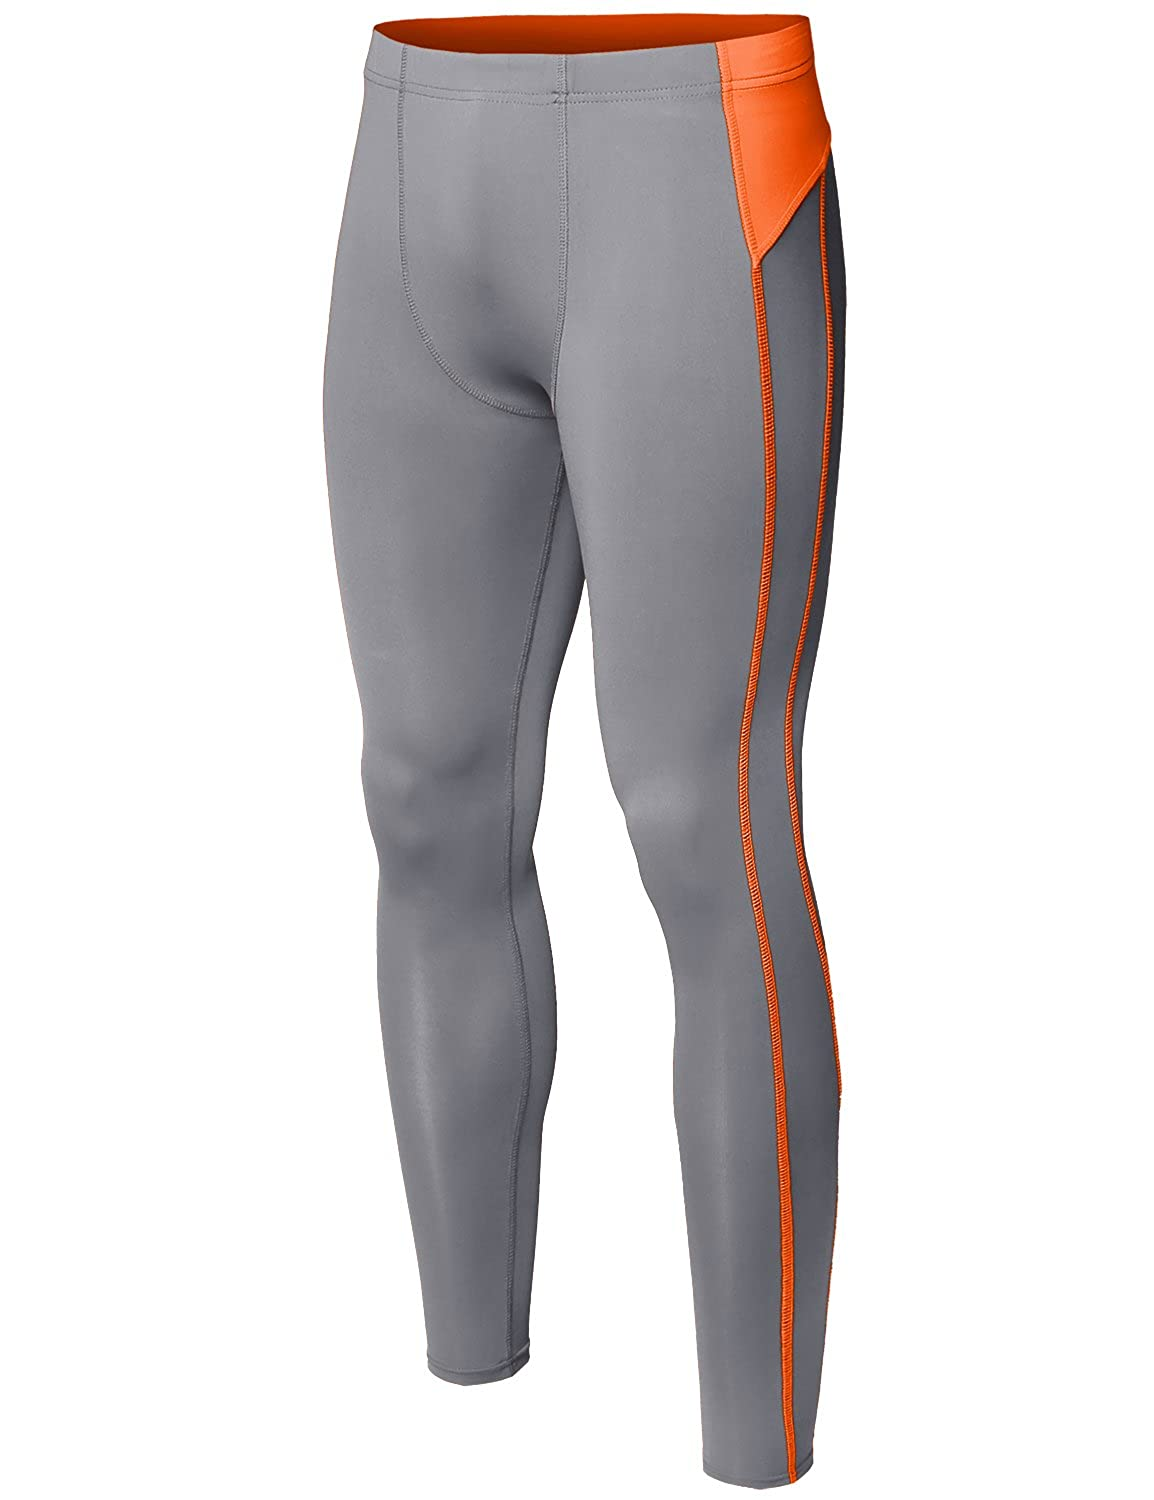 Youstar Mens Athletic Compression Base Under Layer Fitness Tight Pant